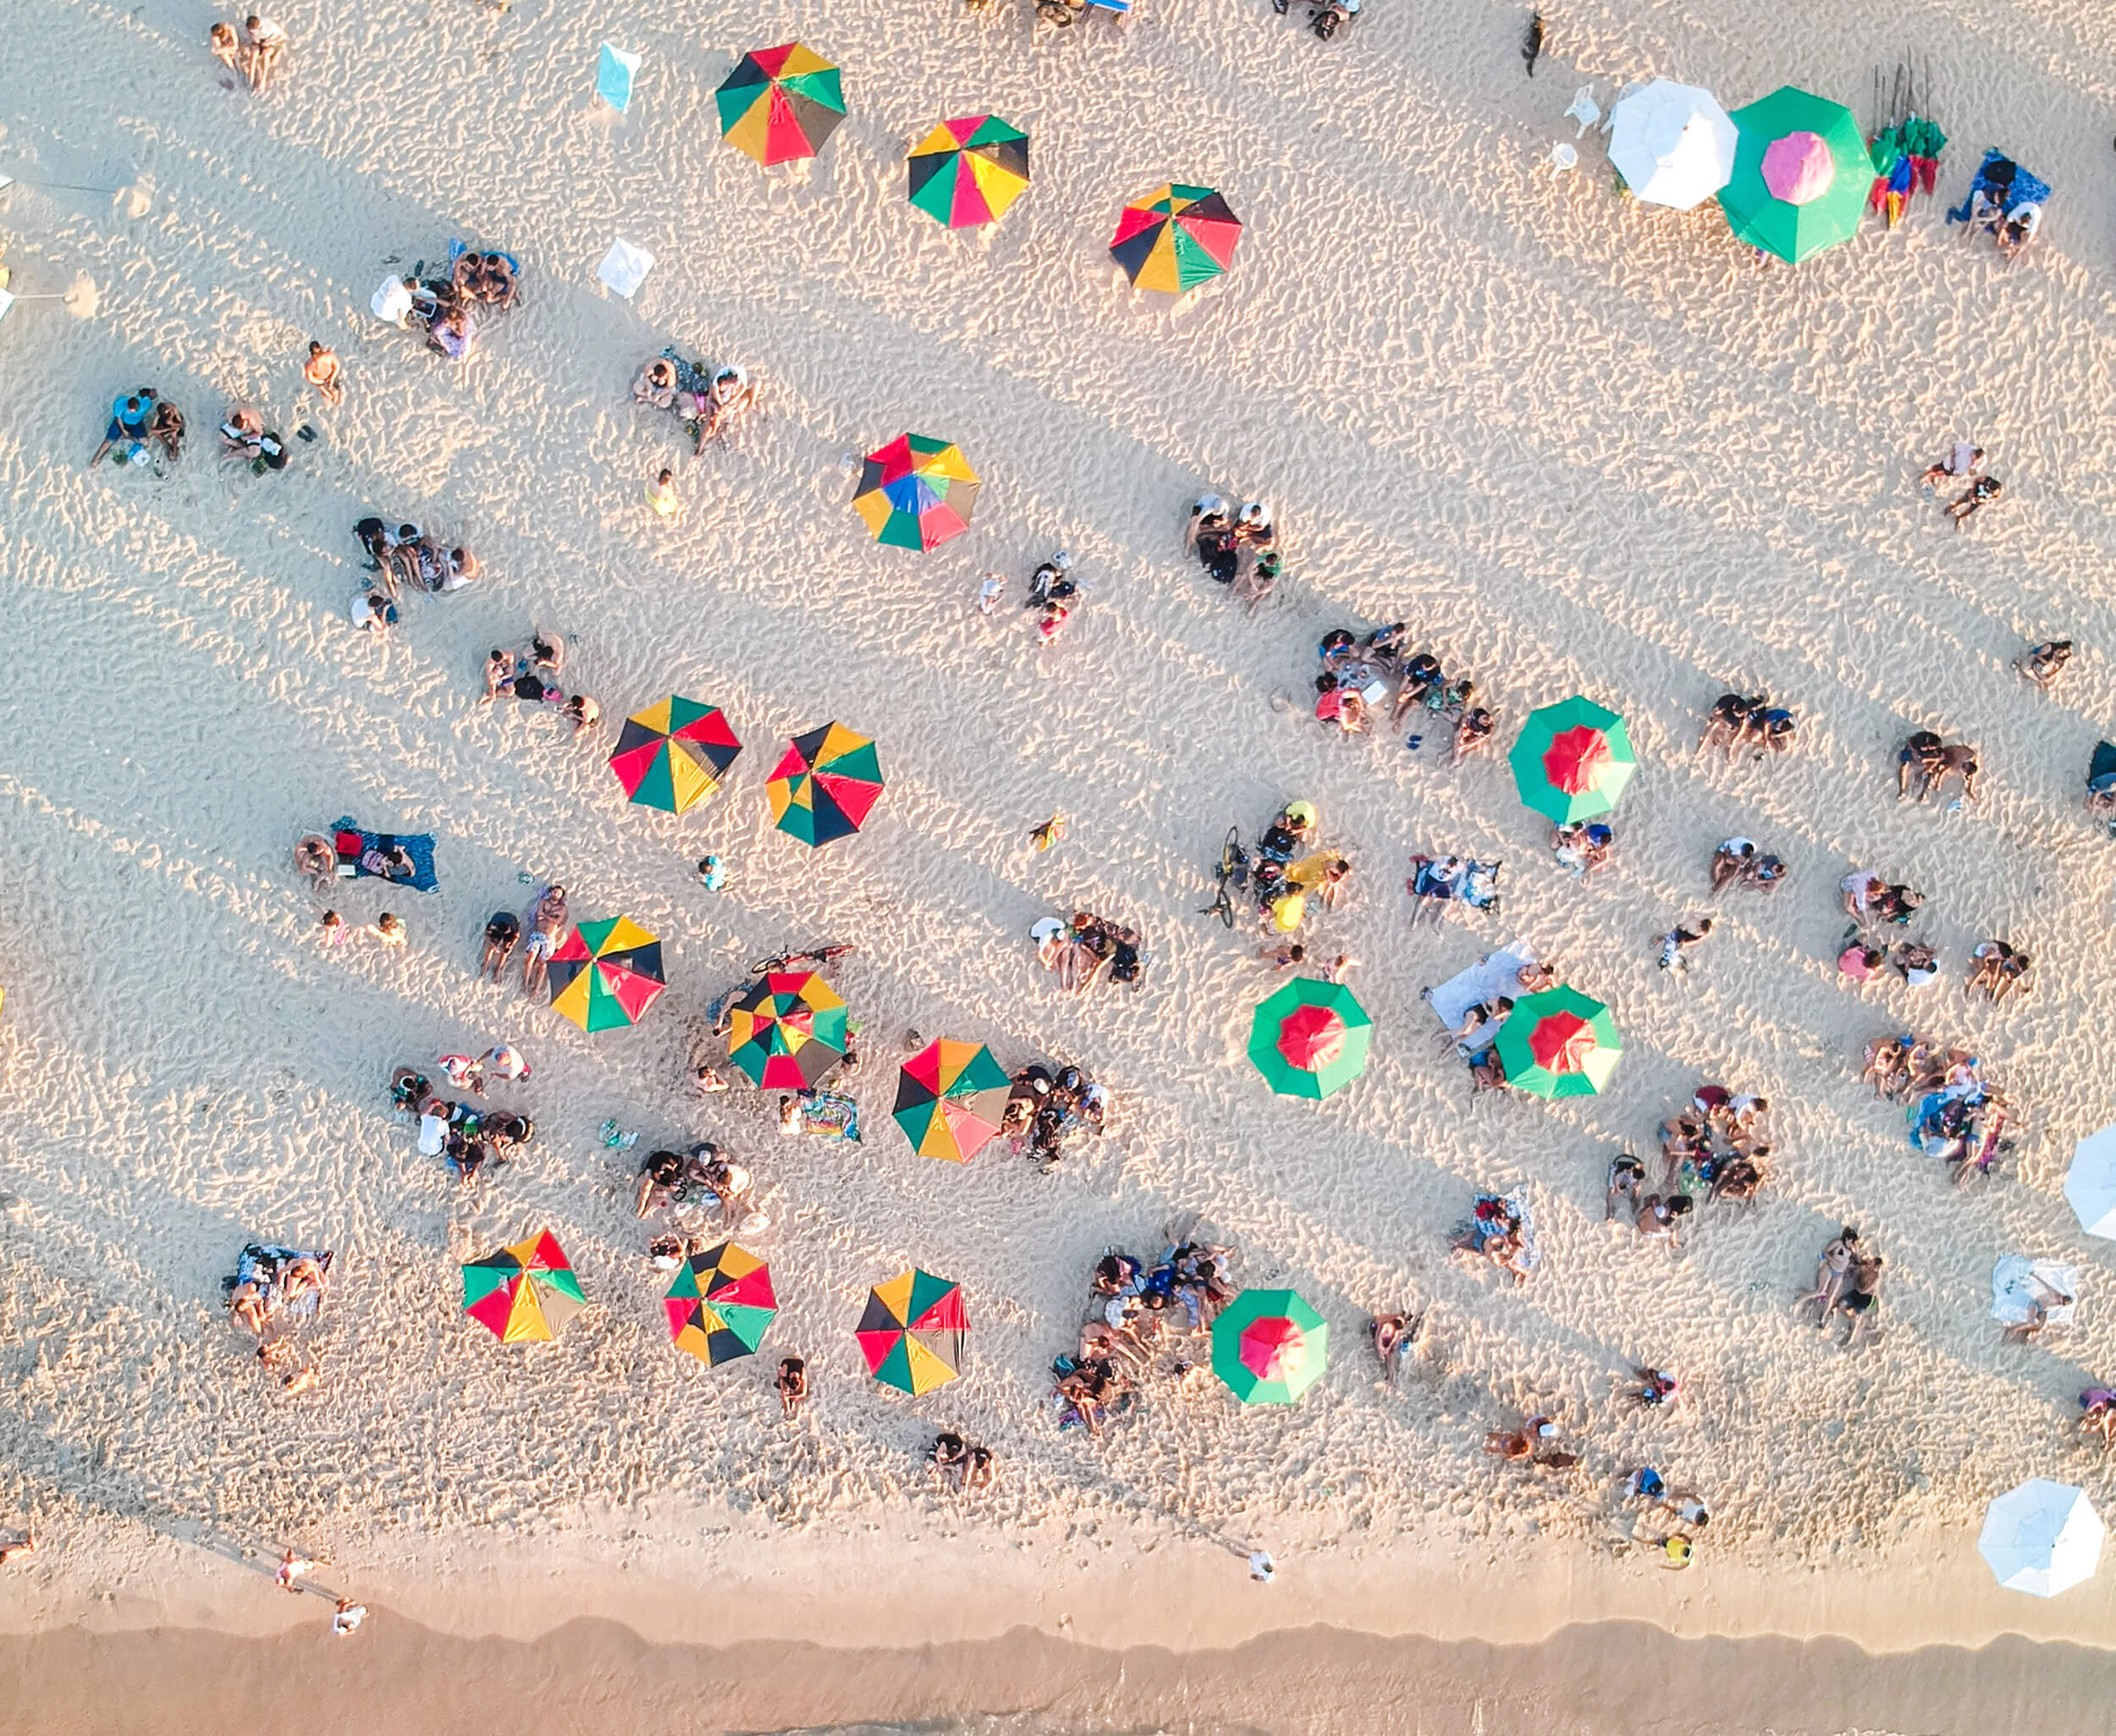 Aerial view of people sitting on sand on the beach